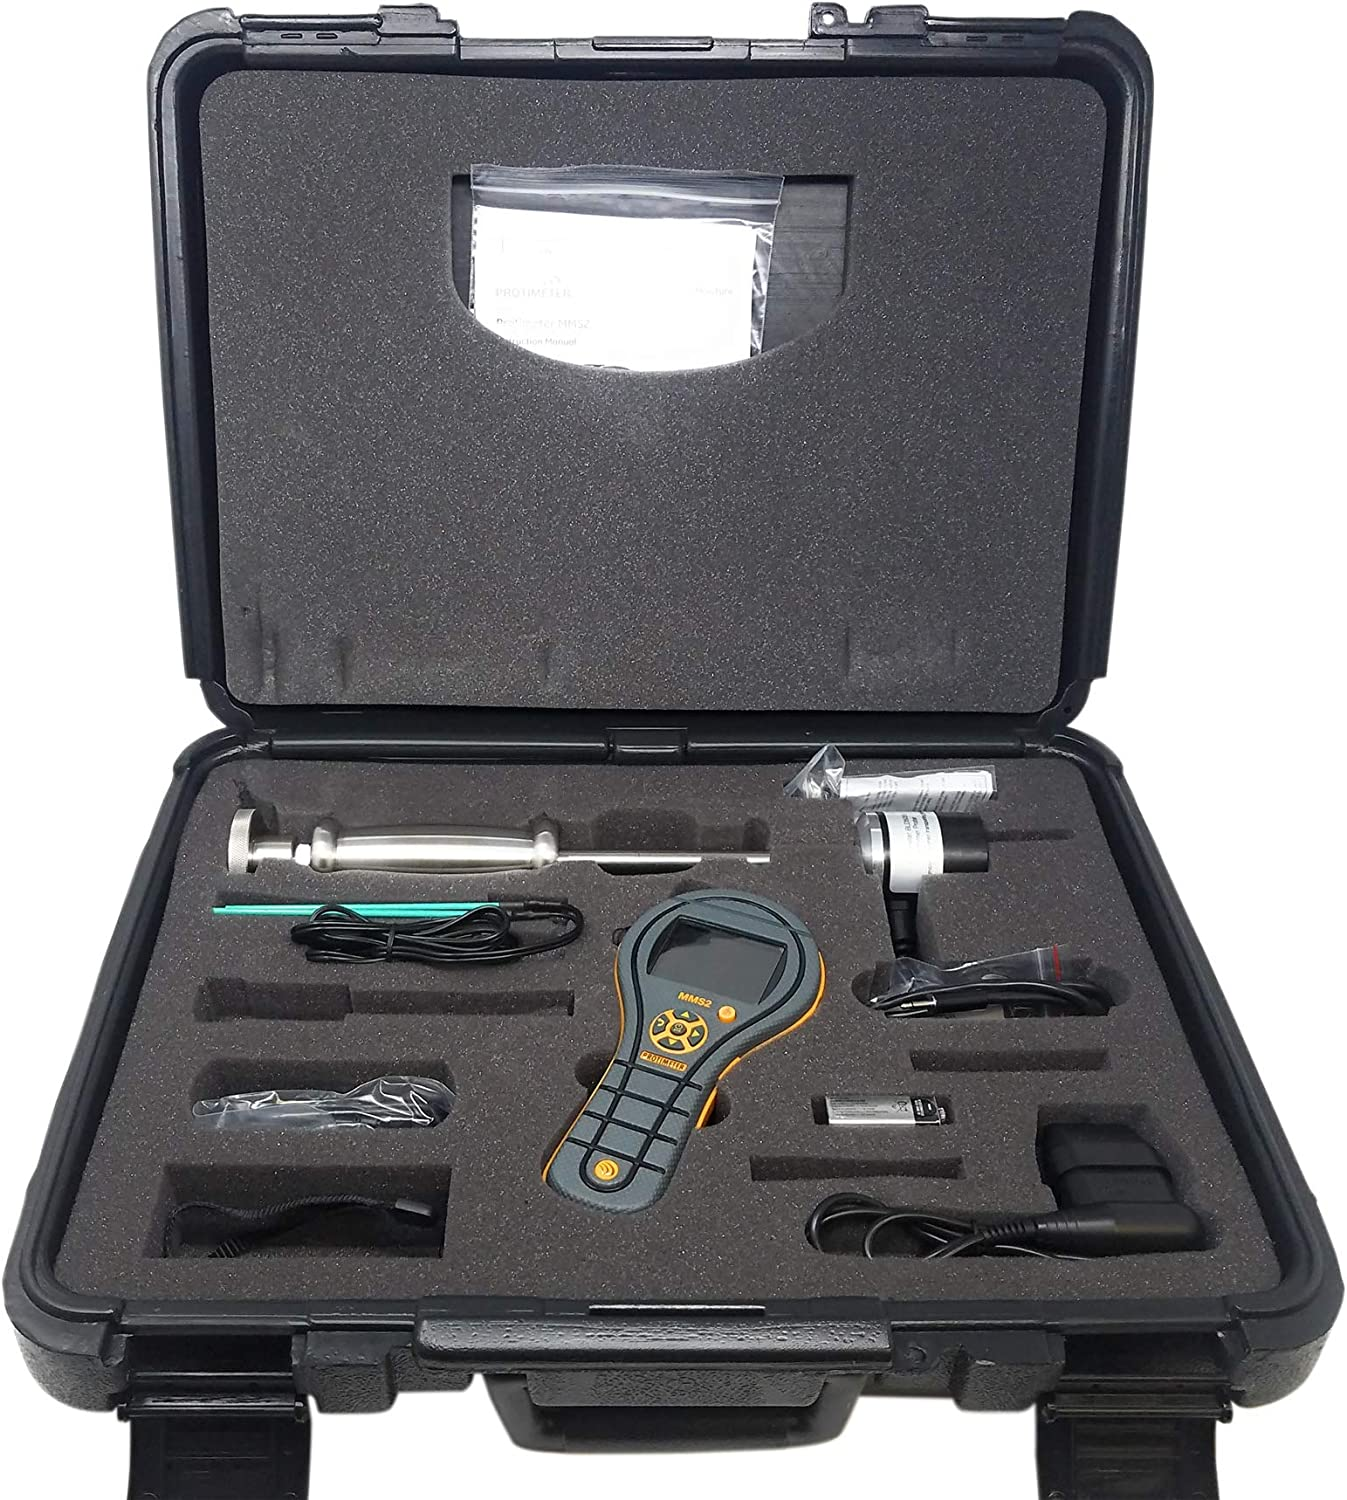 GE Protimeter BLD8800CR MMS2 Moisture Meter Measurement System with Restoration Kit and QuickStick Sensor